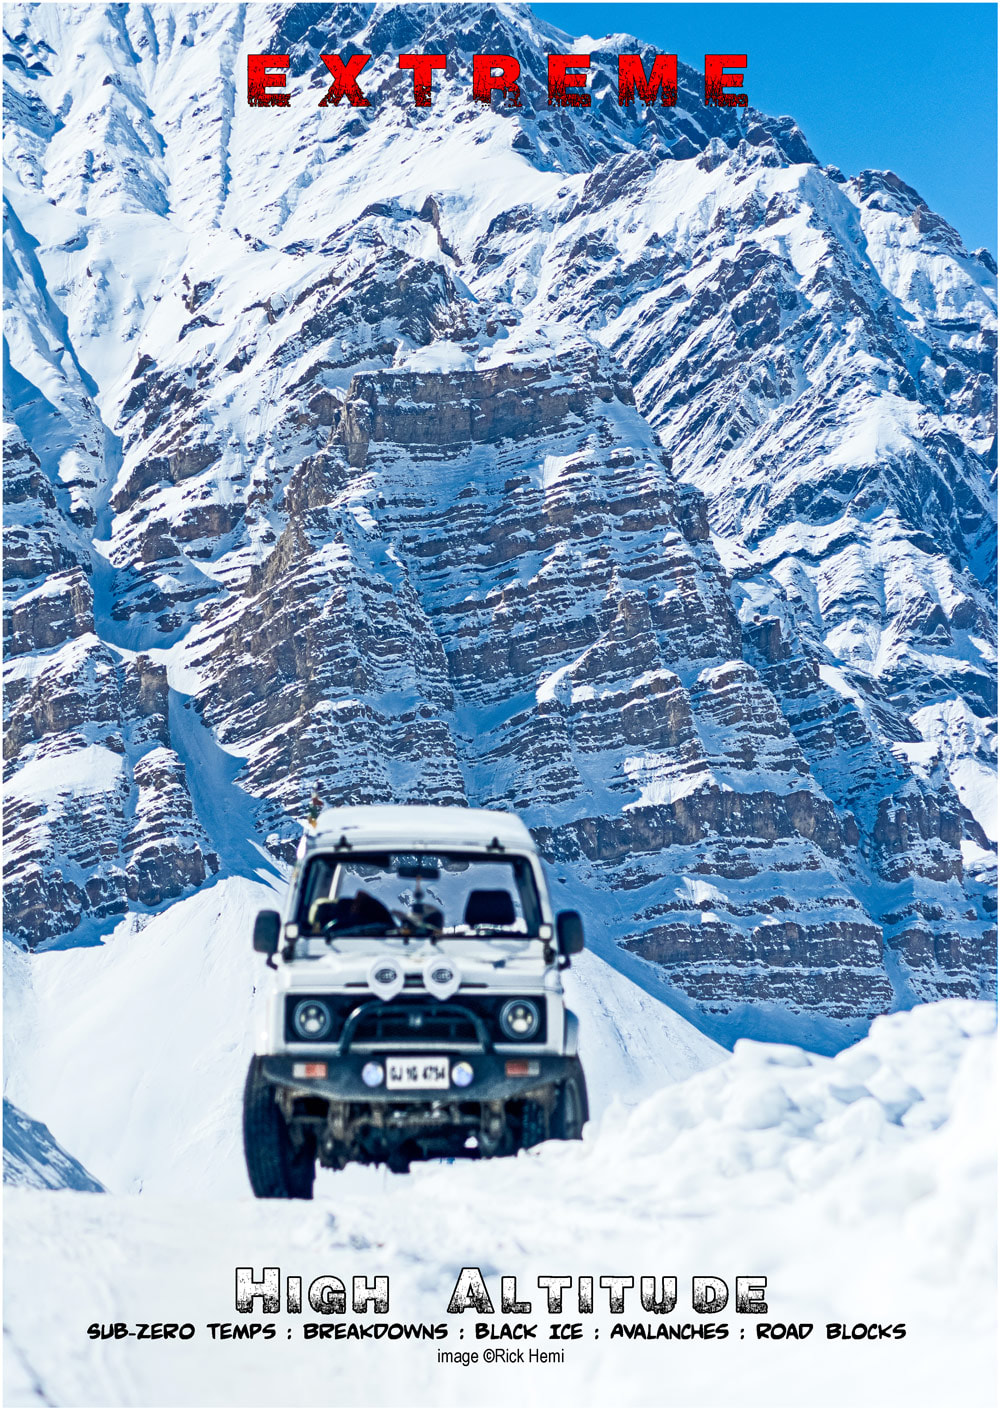 overland travel self-driving above 3500 metres in mid-winter sub-zero conditions, Himalaya, Andes,